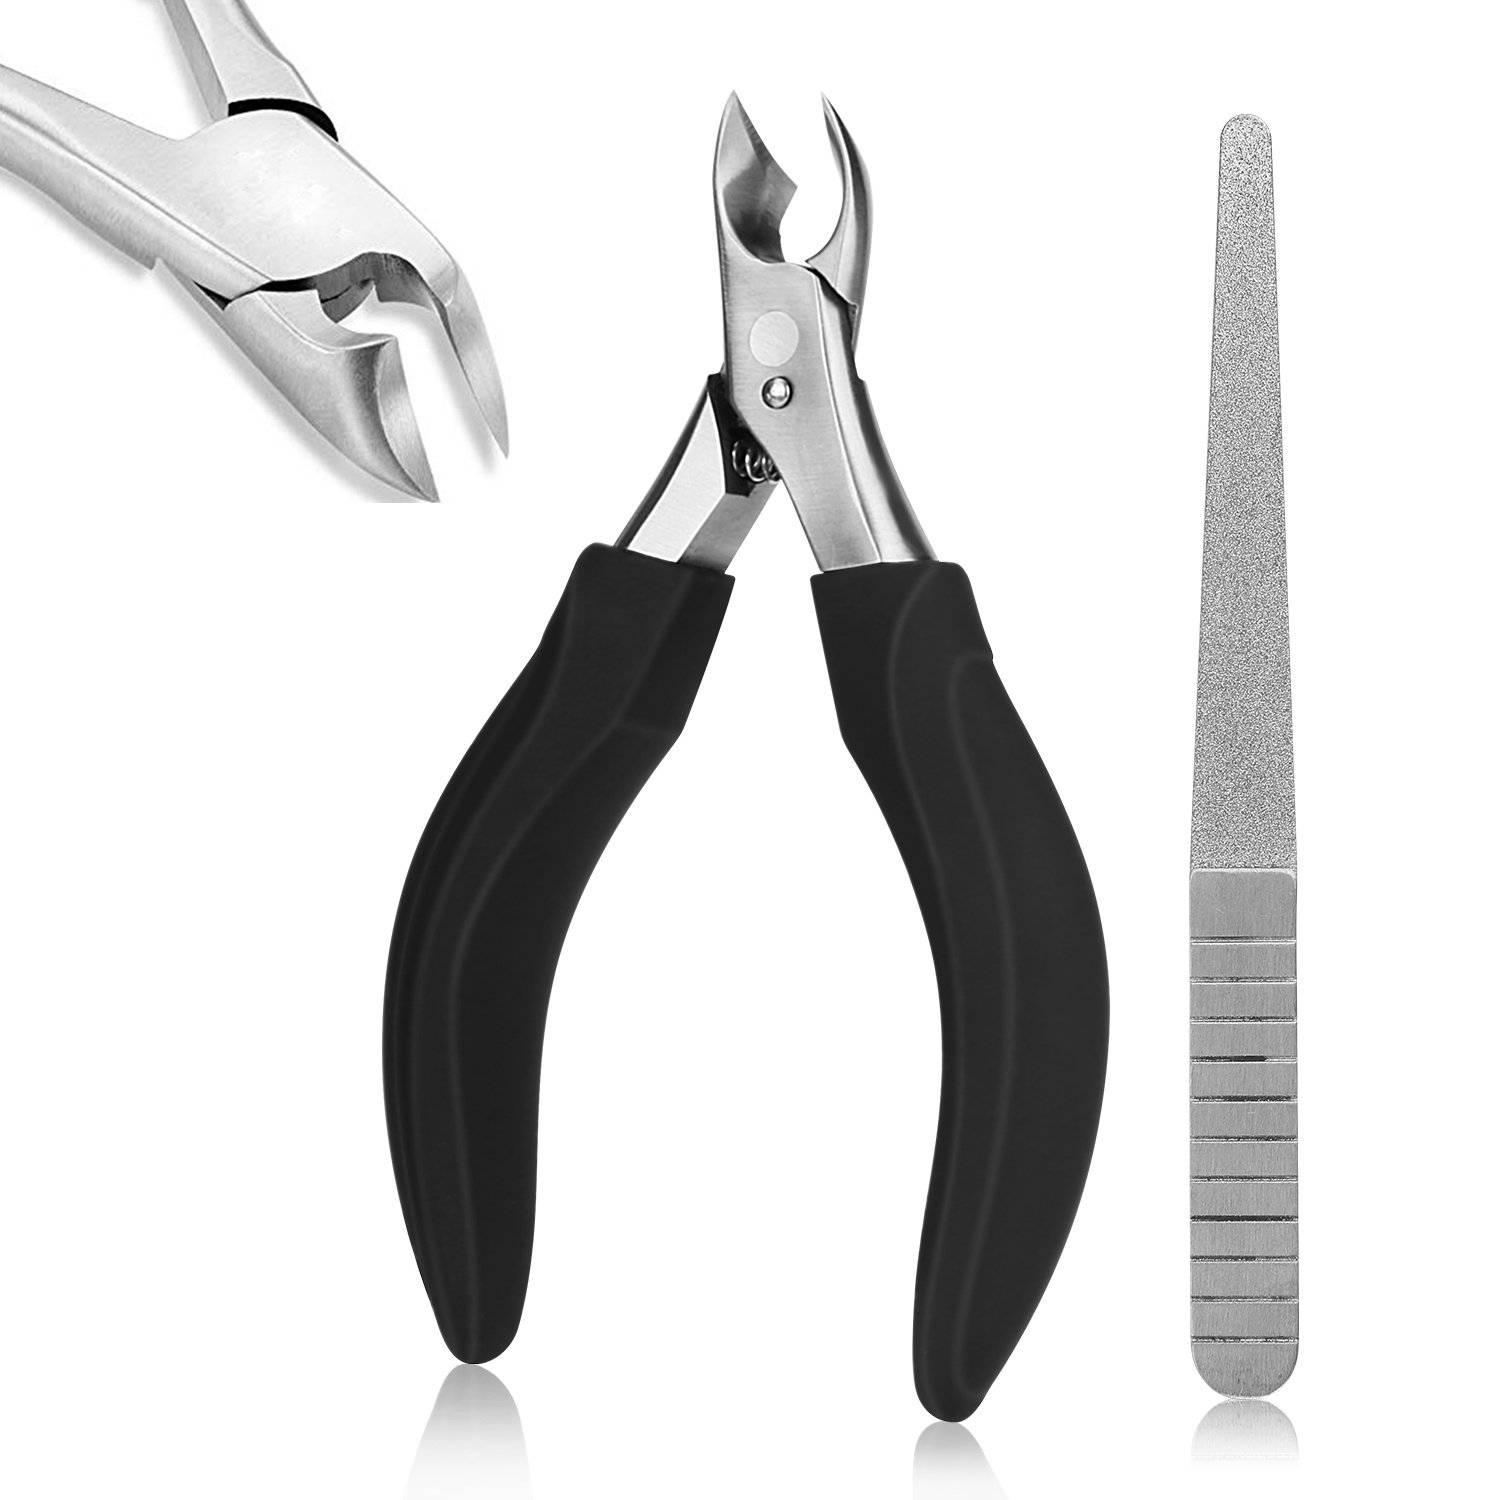 Doubtless Bay Nail Clippers With File for Thick or Ingrown Toenails Nail Cutters Sharp Nail Cutters Large Grip Toenail Scissors